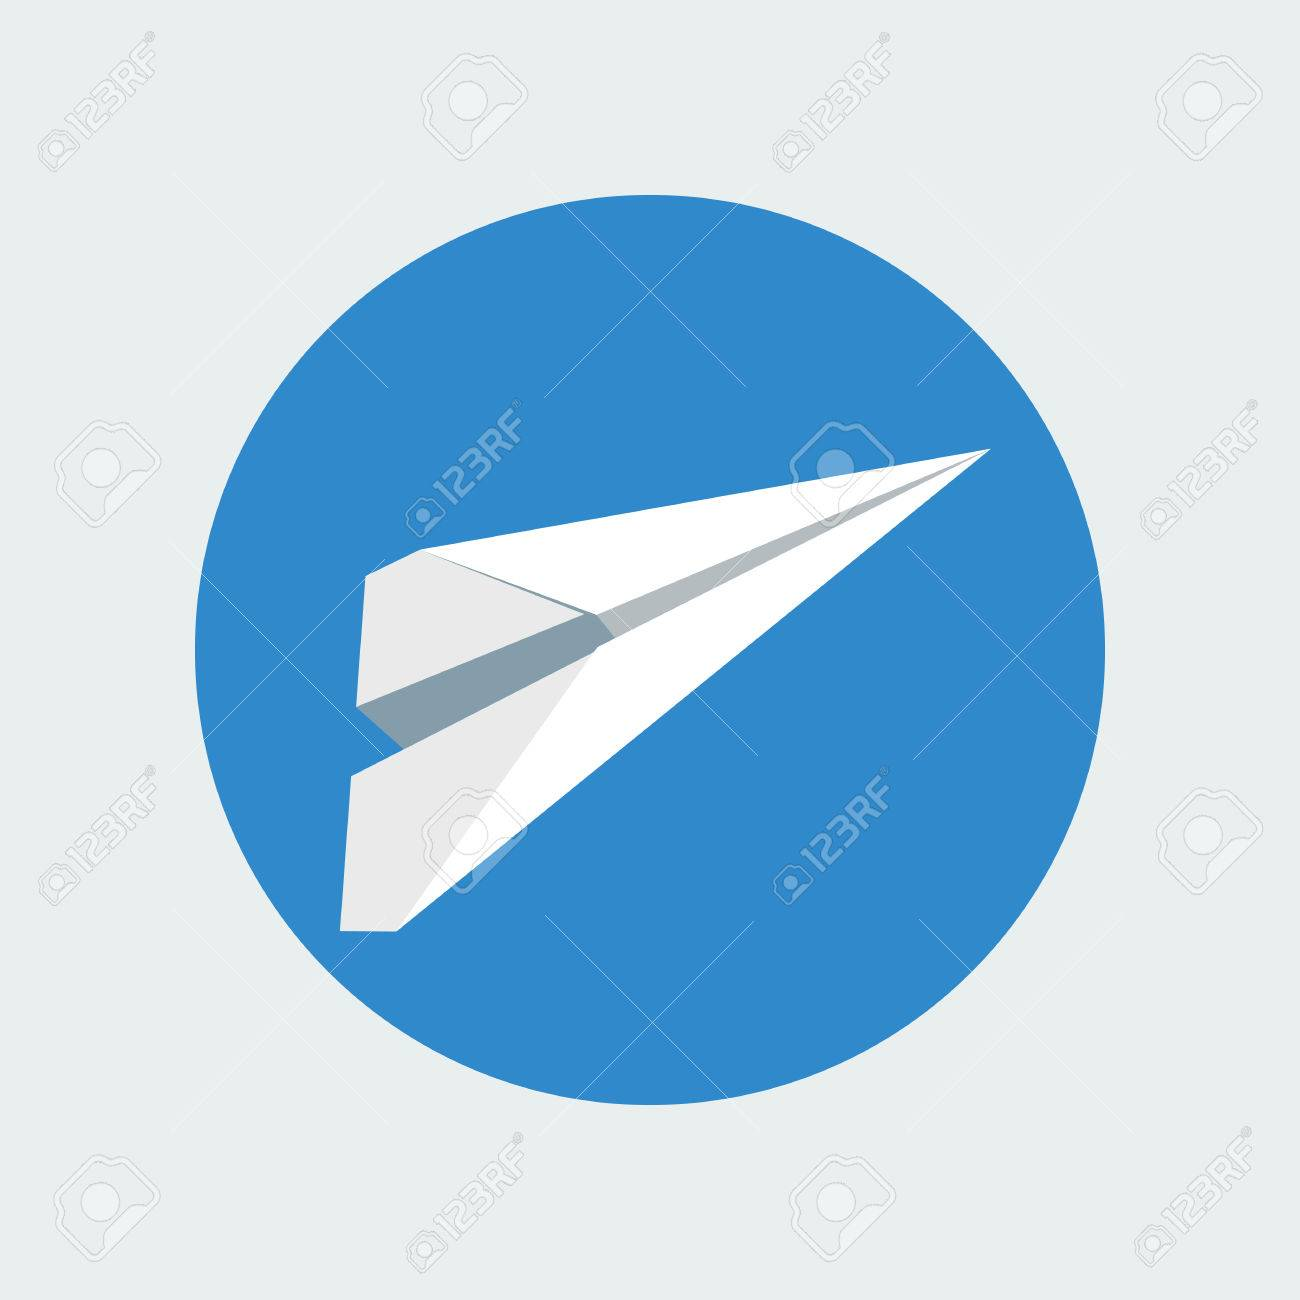 Paper Plane Icon Isolated Inside Sky Blue Circle Background Symbol Of A White Papercraft Origami